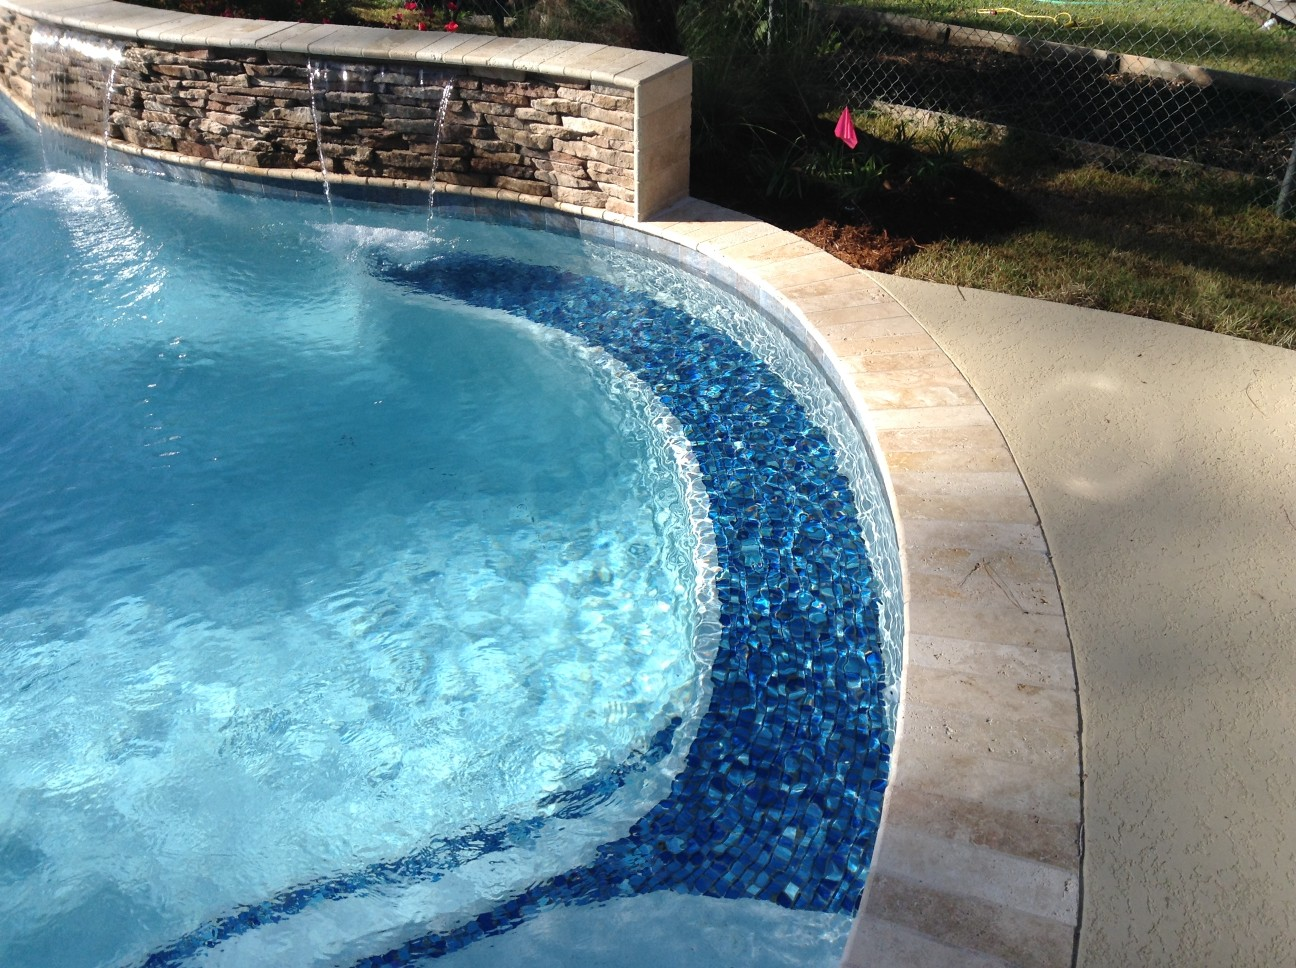 custom swimming pool contractor hammond, louisiana (202)